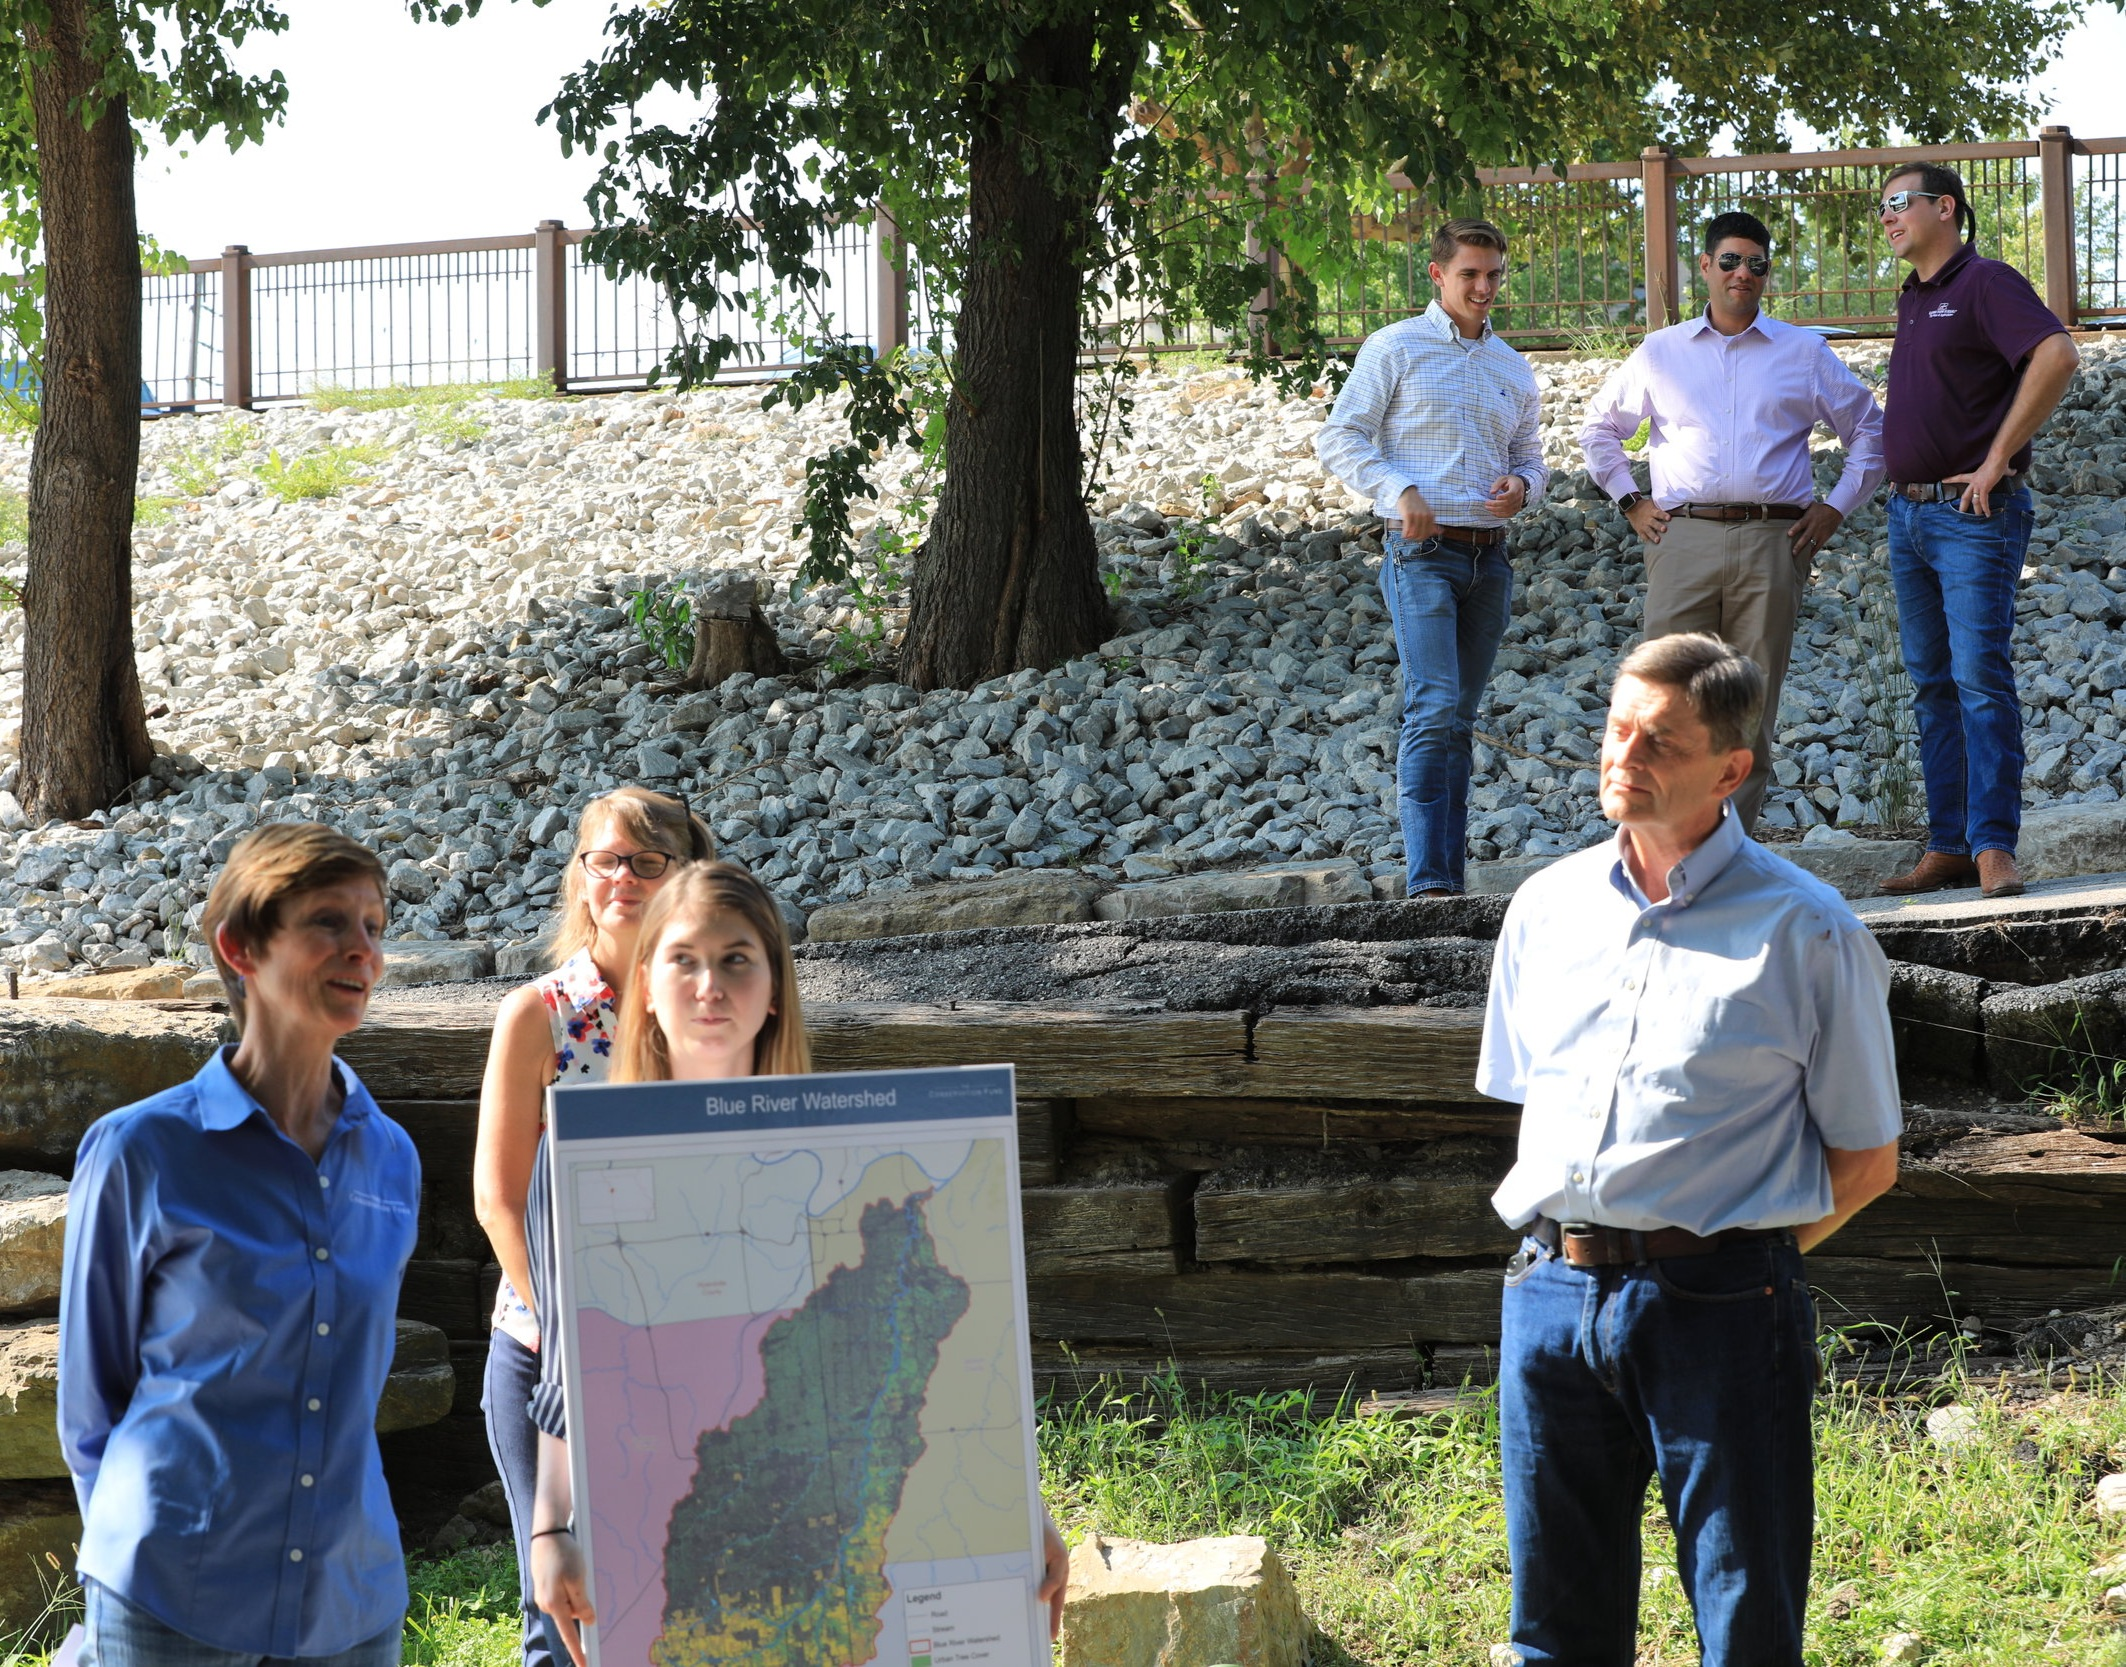 Ginny Moore and Jerry Jost presenting the Blue River Conservation Collaborative to Senator Moran and other state agencies during Moran's conservation tour in September.